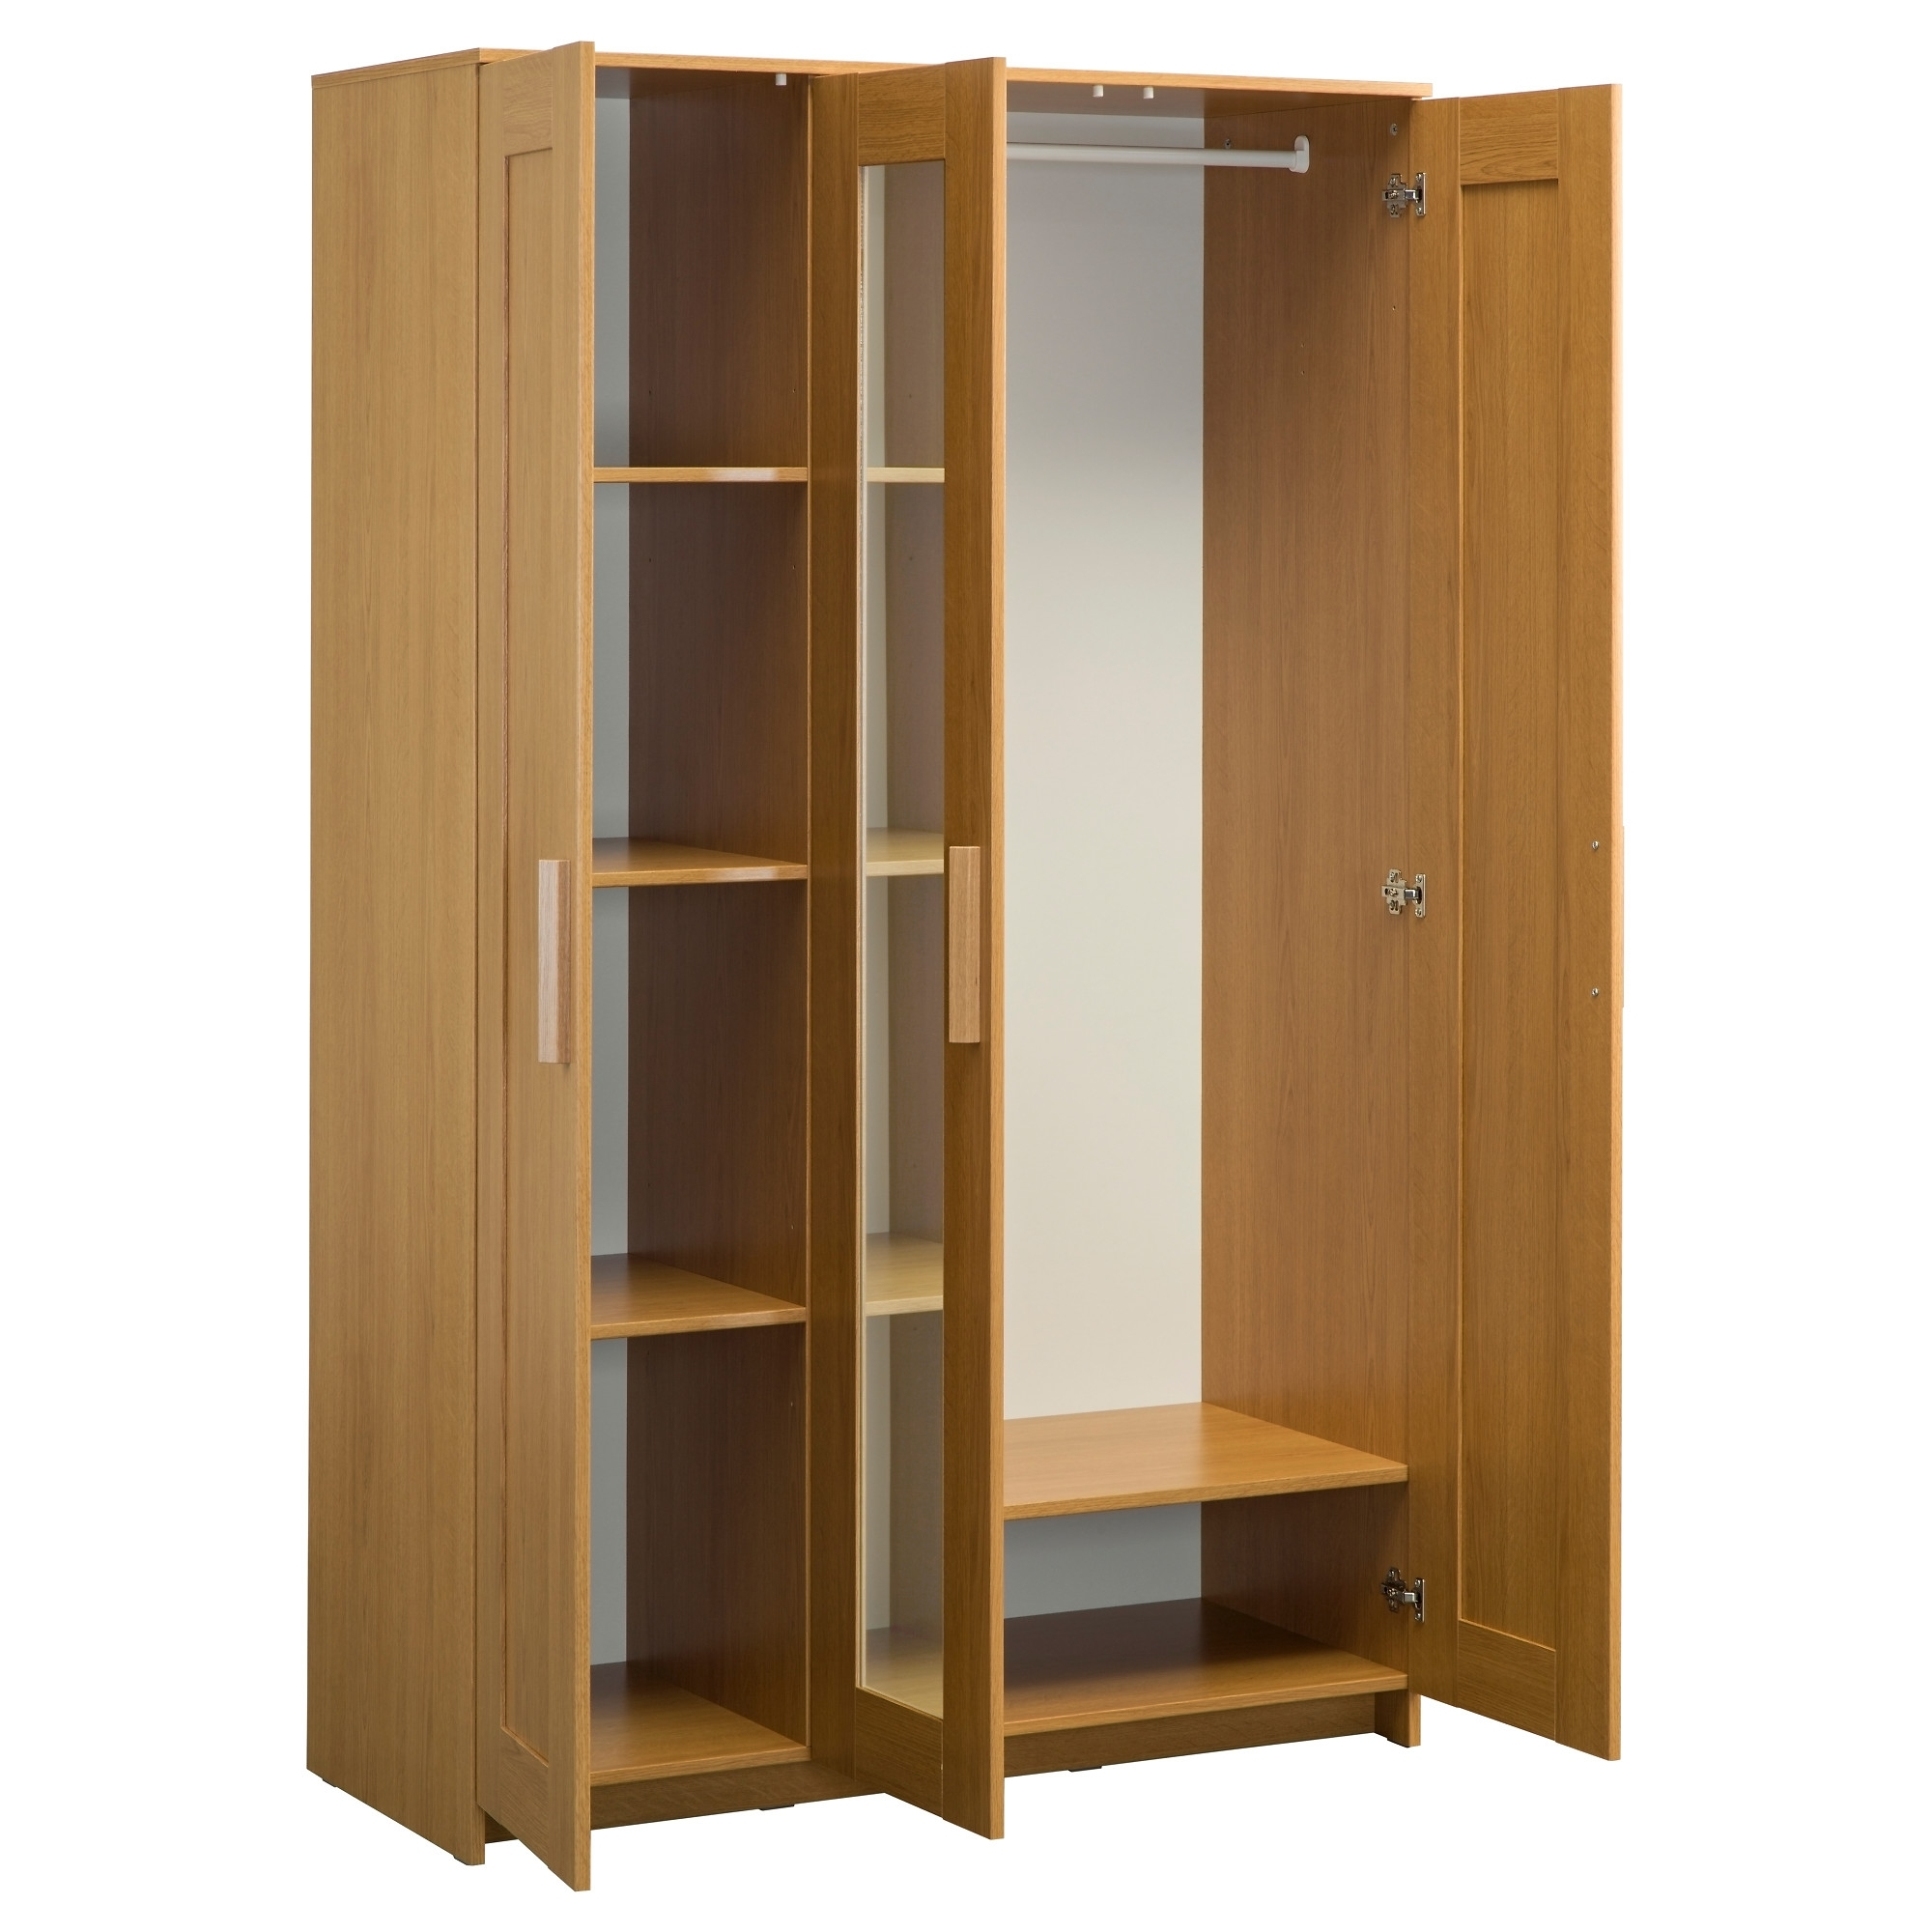 Well Known Cheap 3 Door Wardrobes Within Brimnes Wardrobe With 3 Doors Oak Effect 117x190 Cm – Ikea (View 4 of 15)